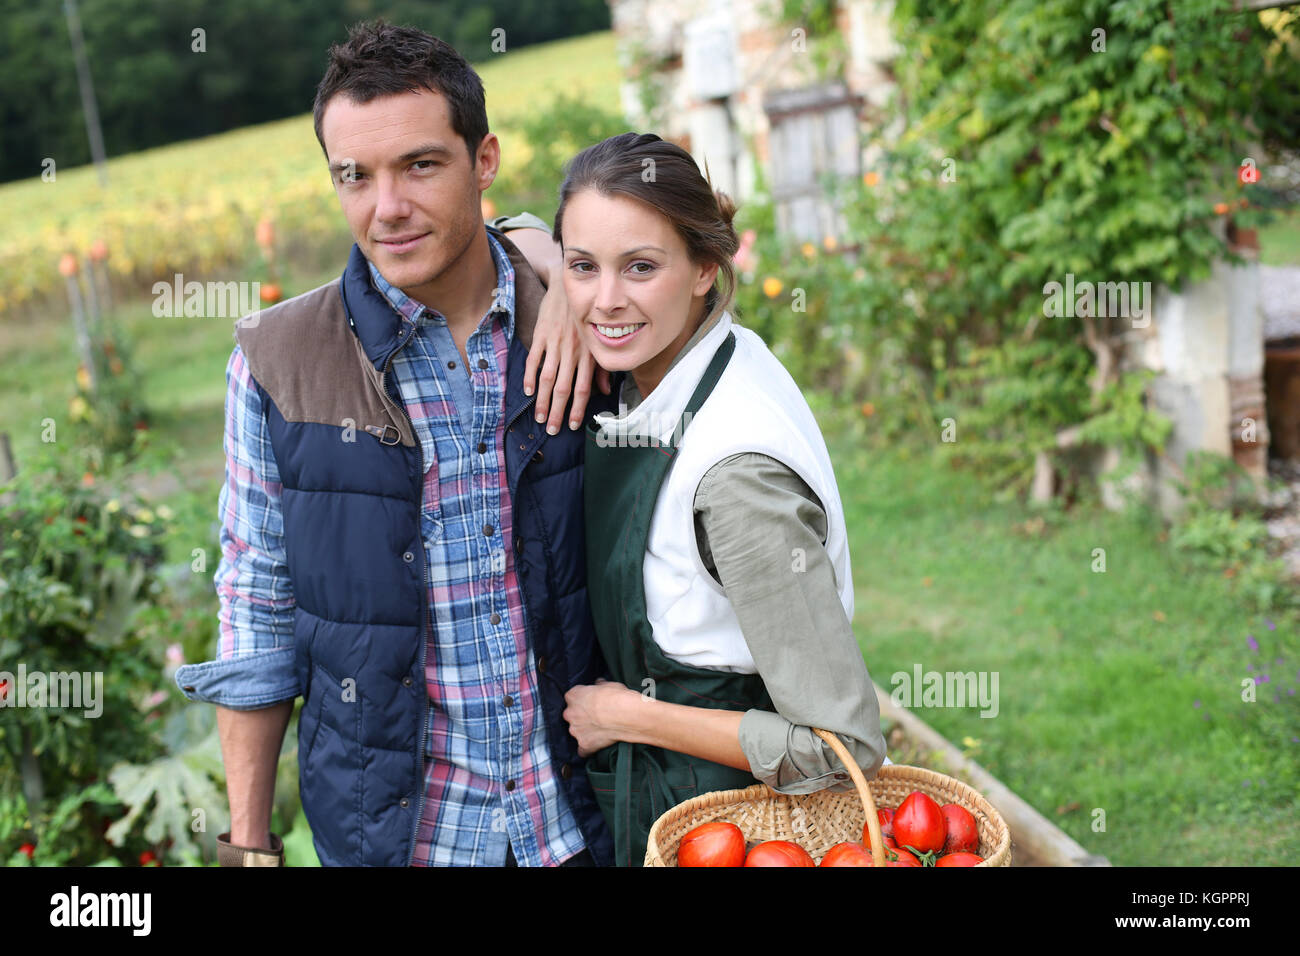 Cheerful couple standing in kitchen garden - Stock Image